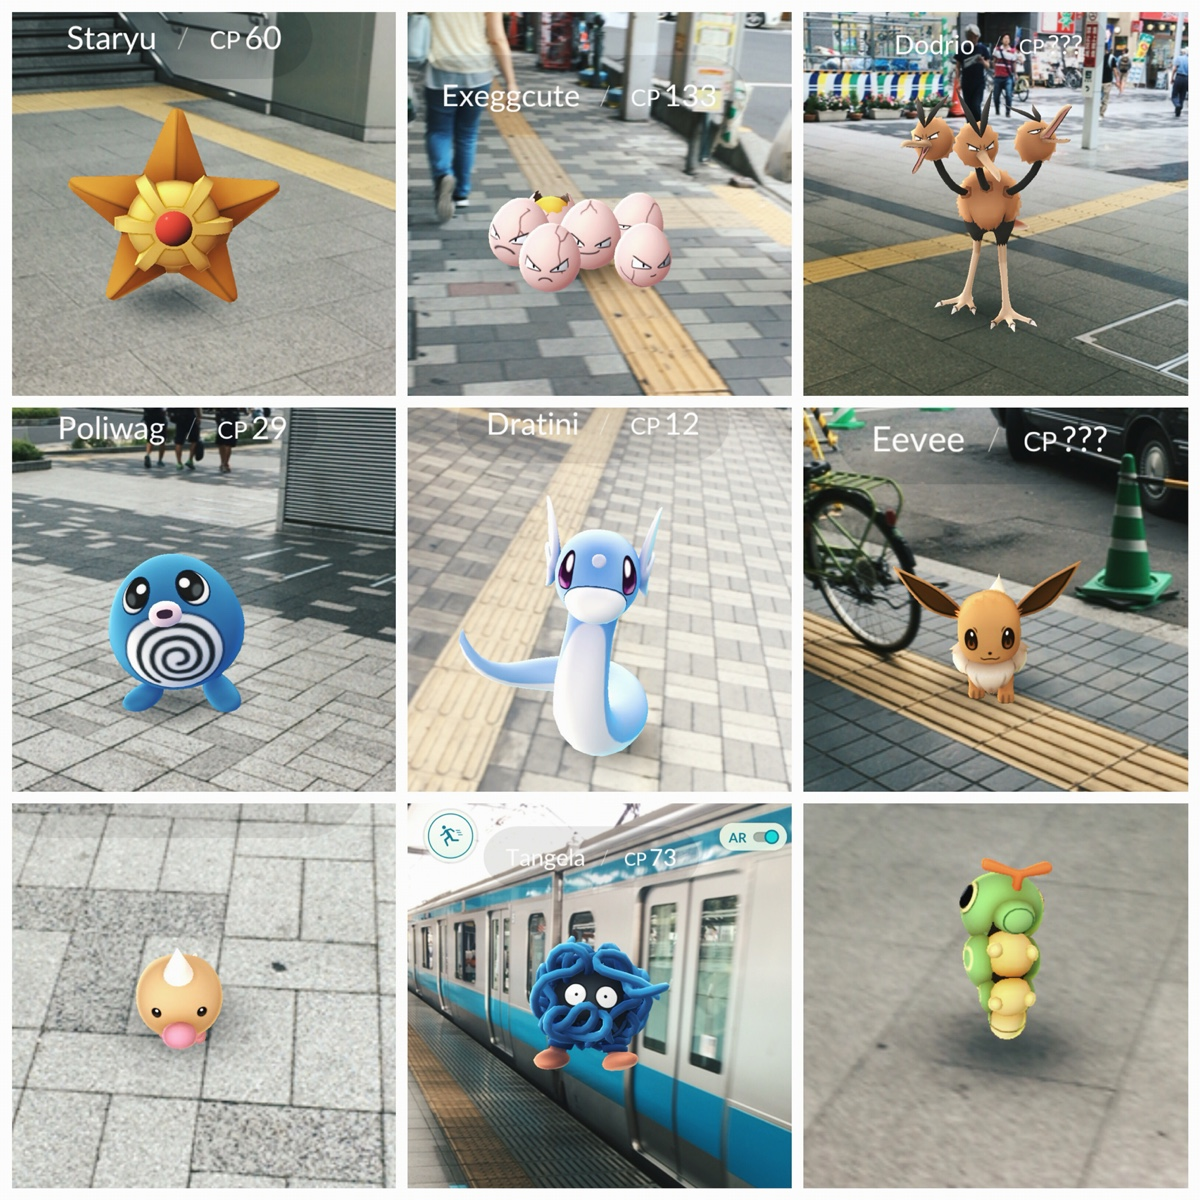 pokemon-go-japan.jpg